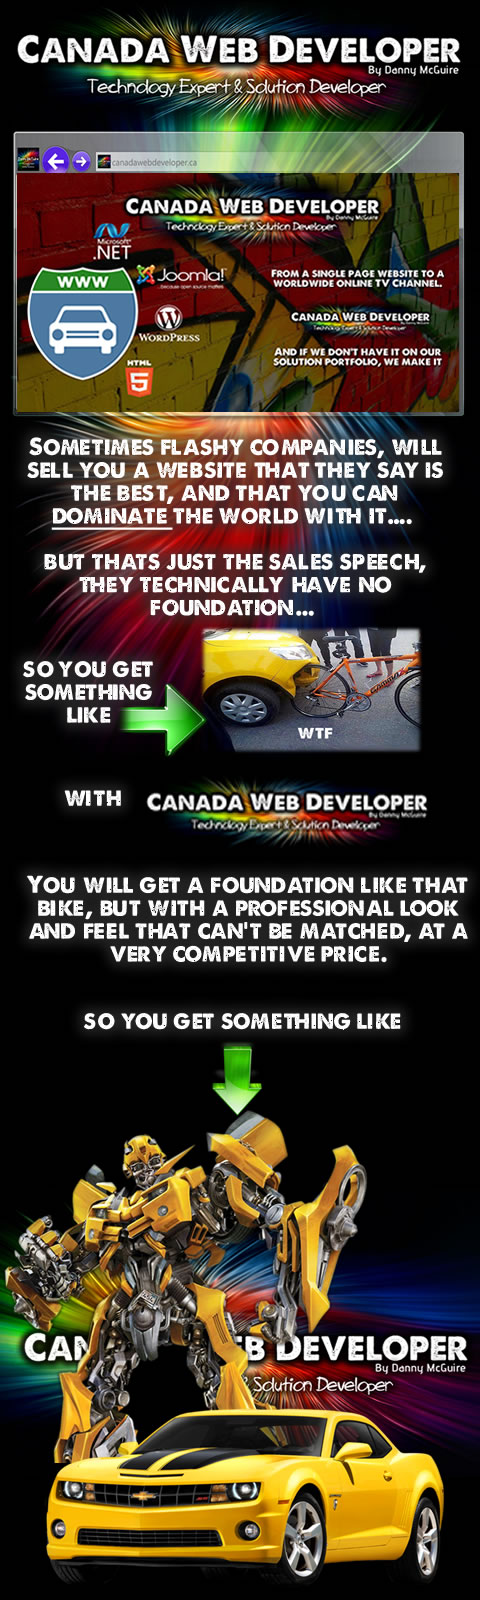 How to Select a Web Design Company by Canada Web Developer